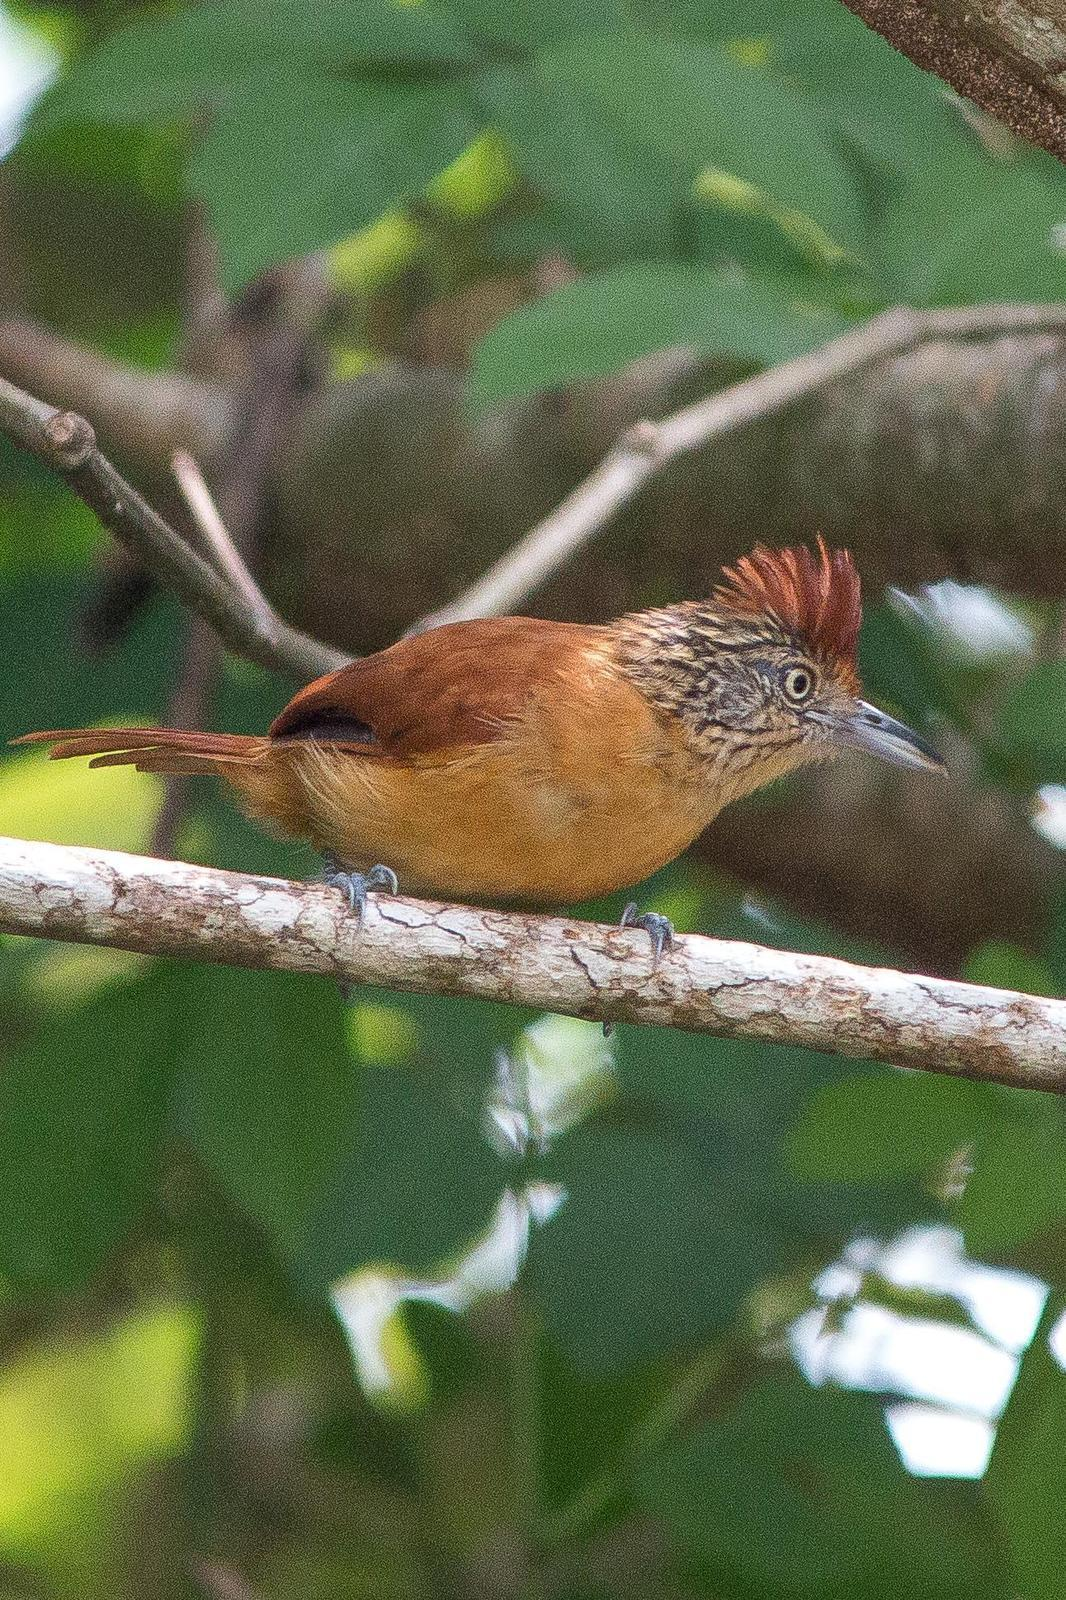 Barred Antshrike Photo by Marie-France Rivard